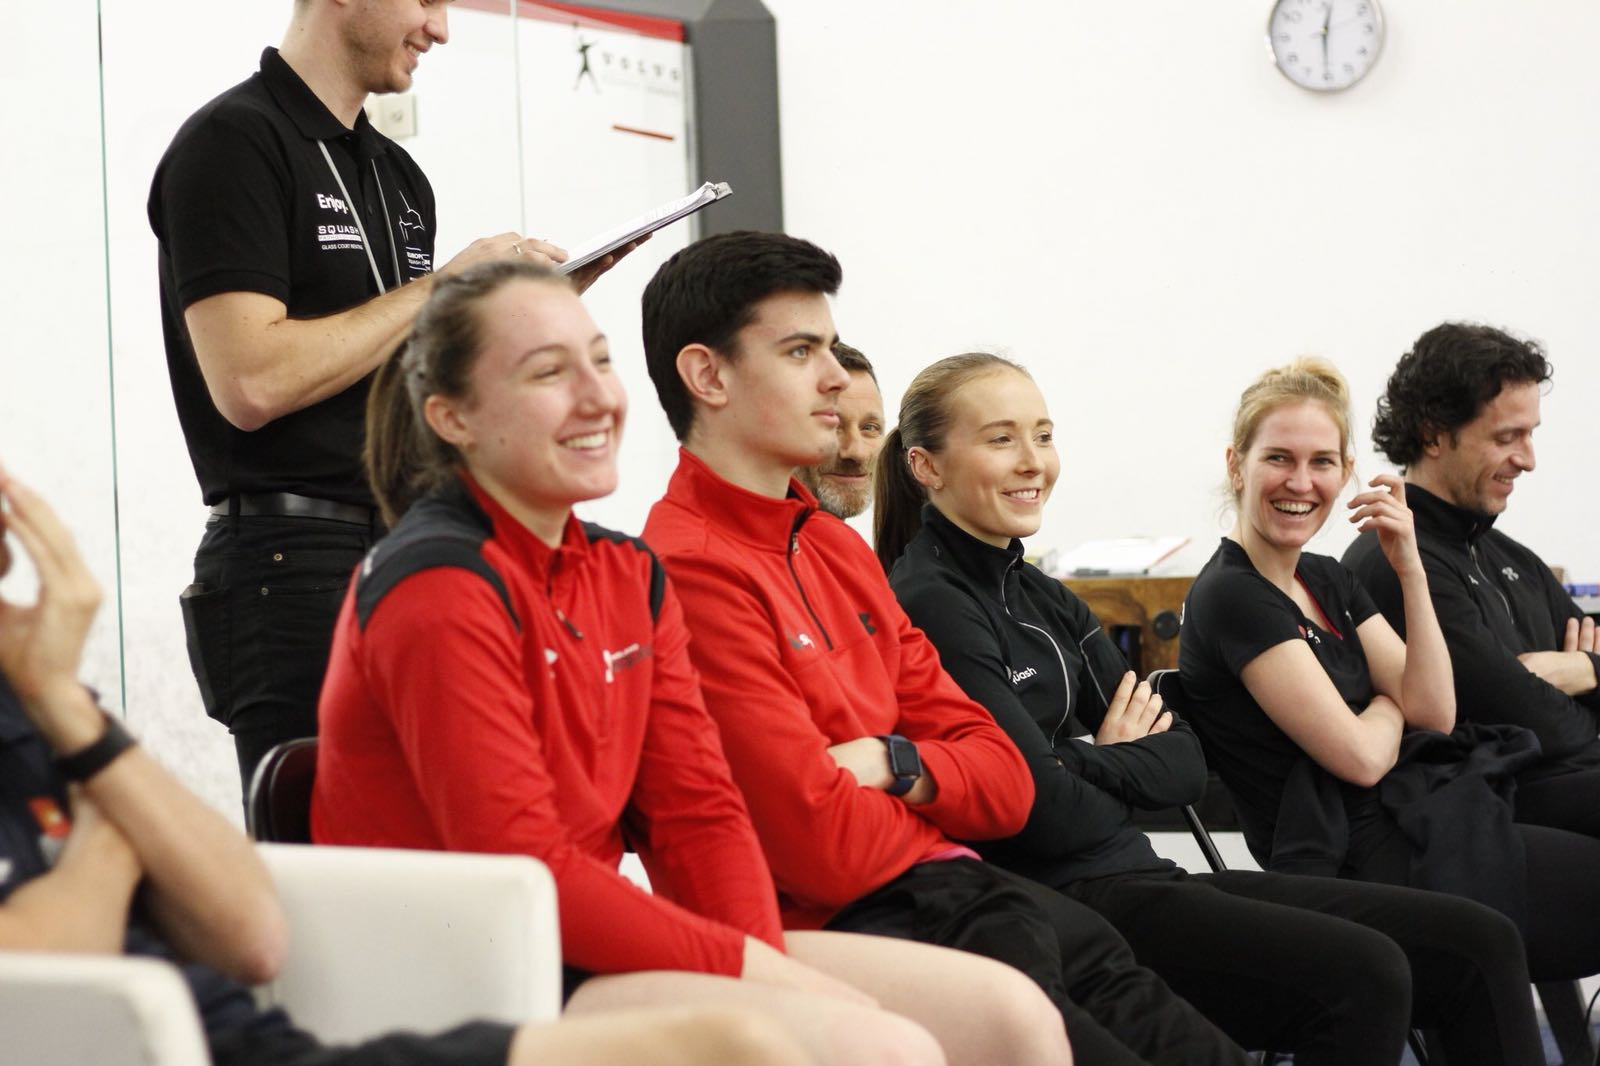 Leeds Beckett Squash coach leads England Squash Under 19s to European glory